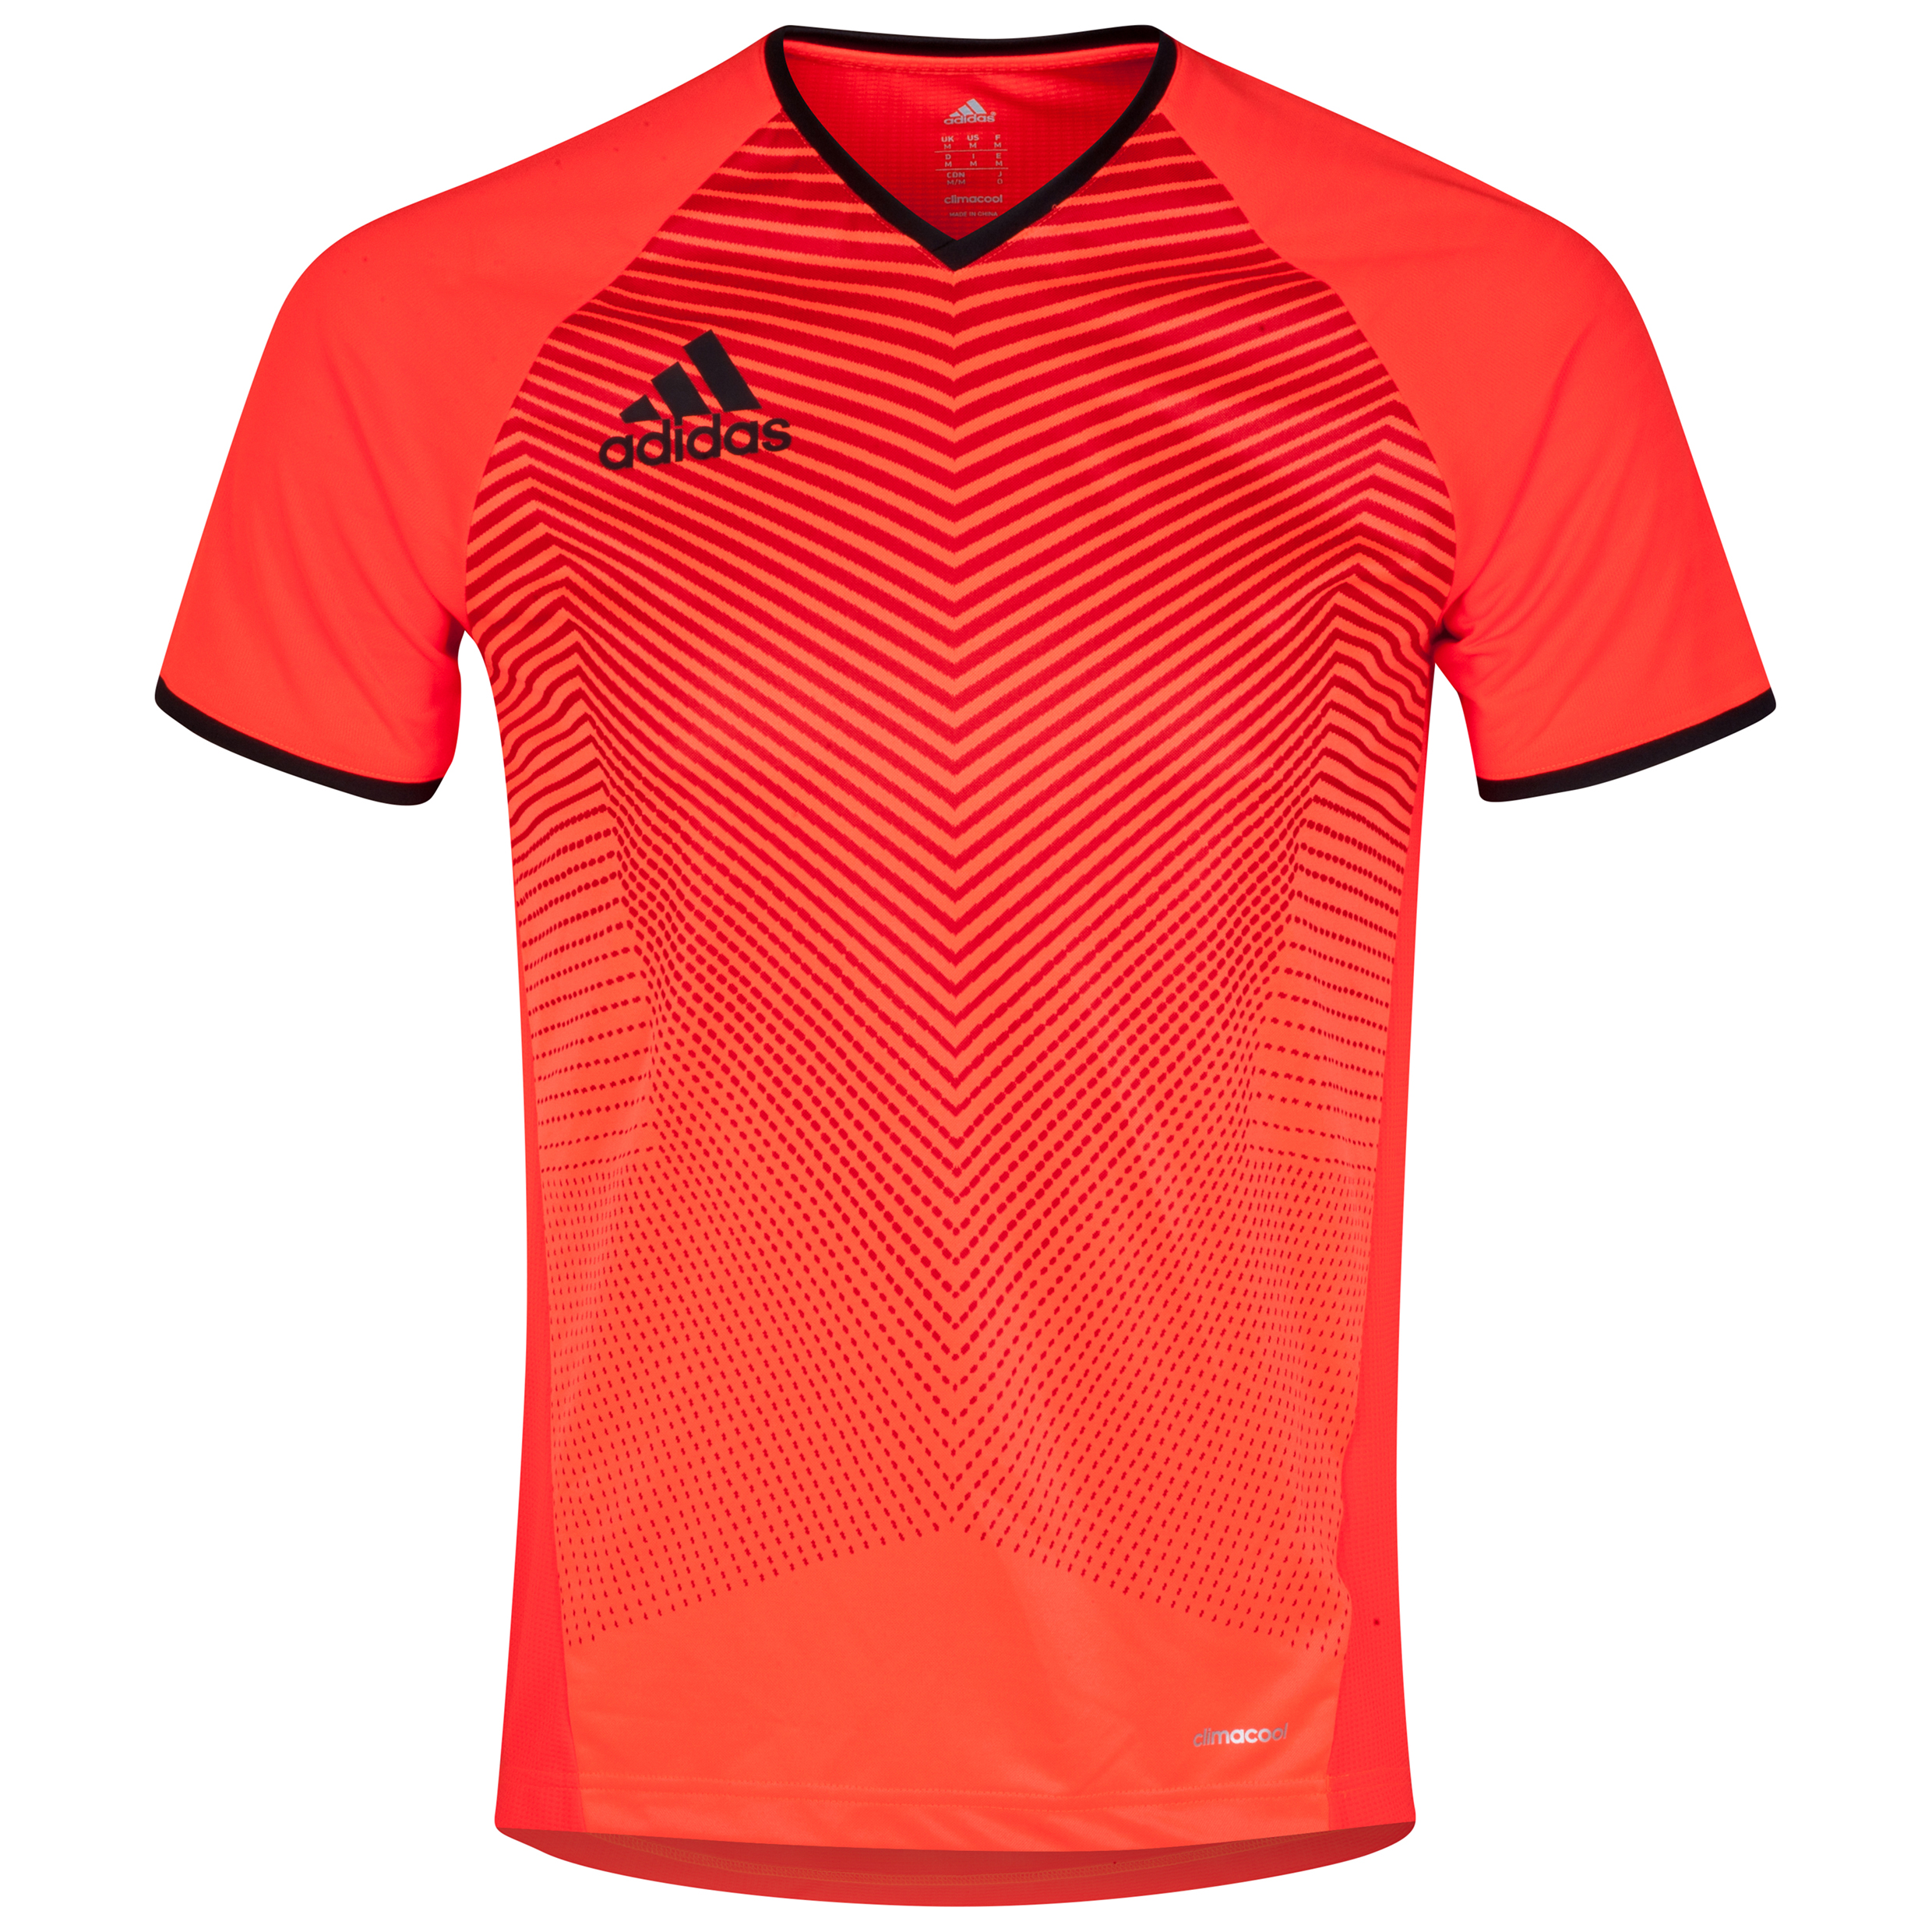 Adidas Predator Training T-Shirt Orange